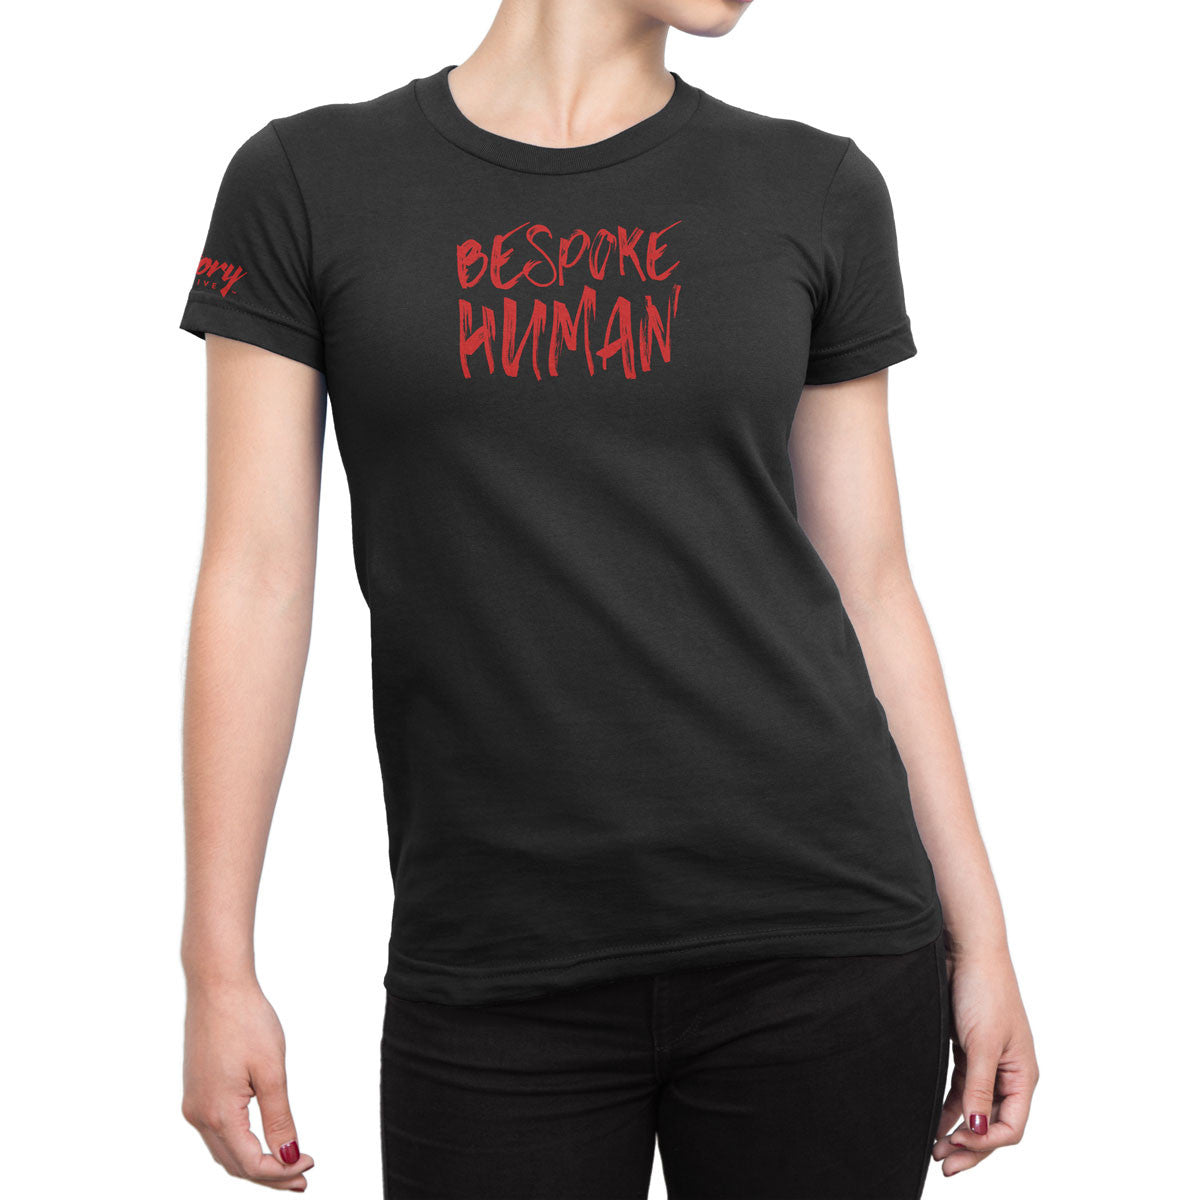 Bespoke Human — Women's T-Shirt (Black)